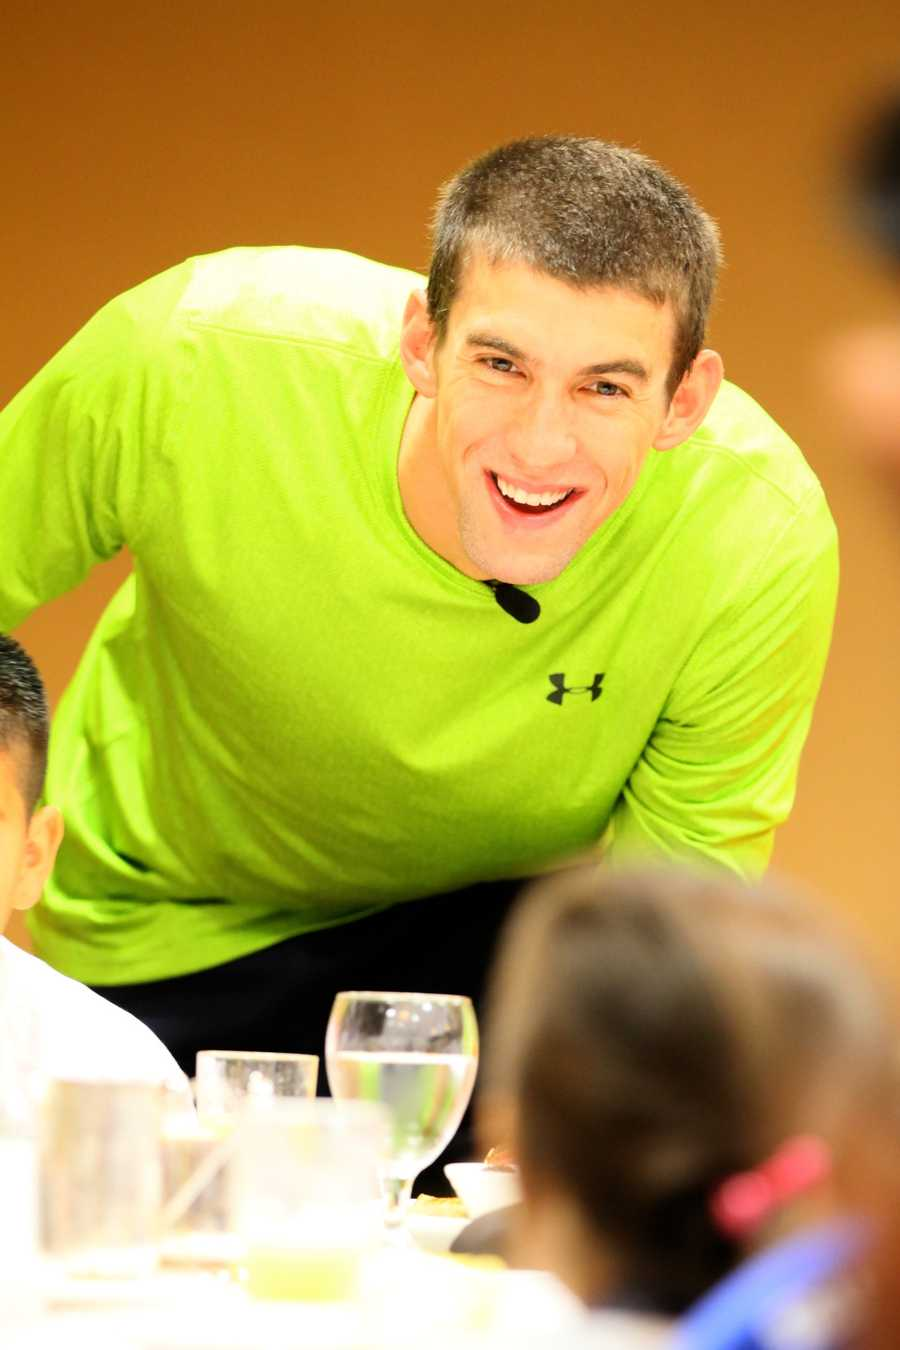 Phelps spoke to the youngsters about his first visit to the pool when he was seven years old.